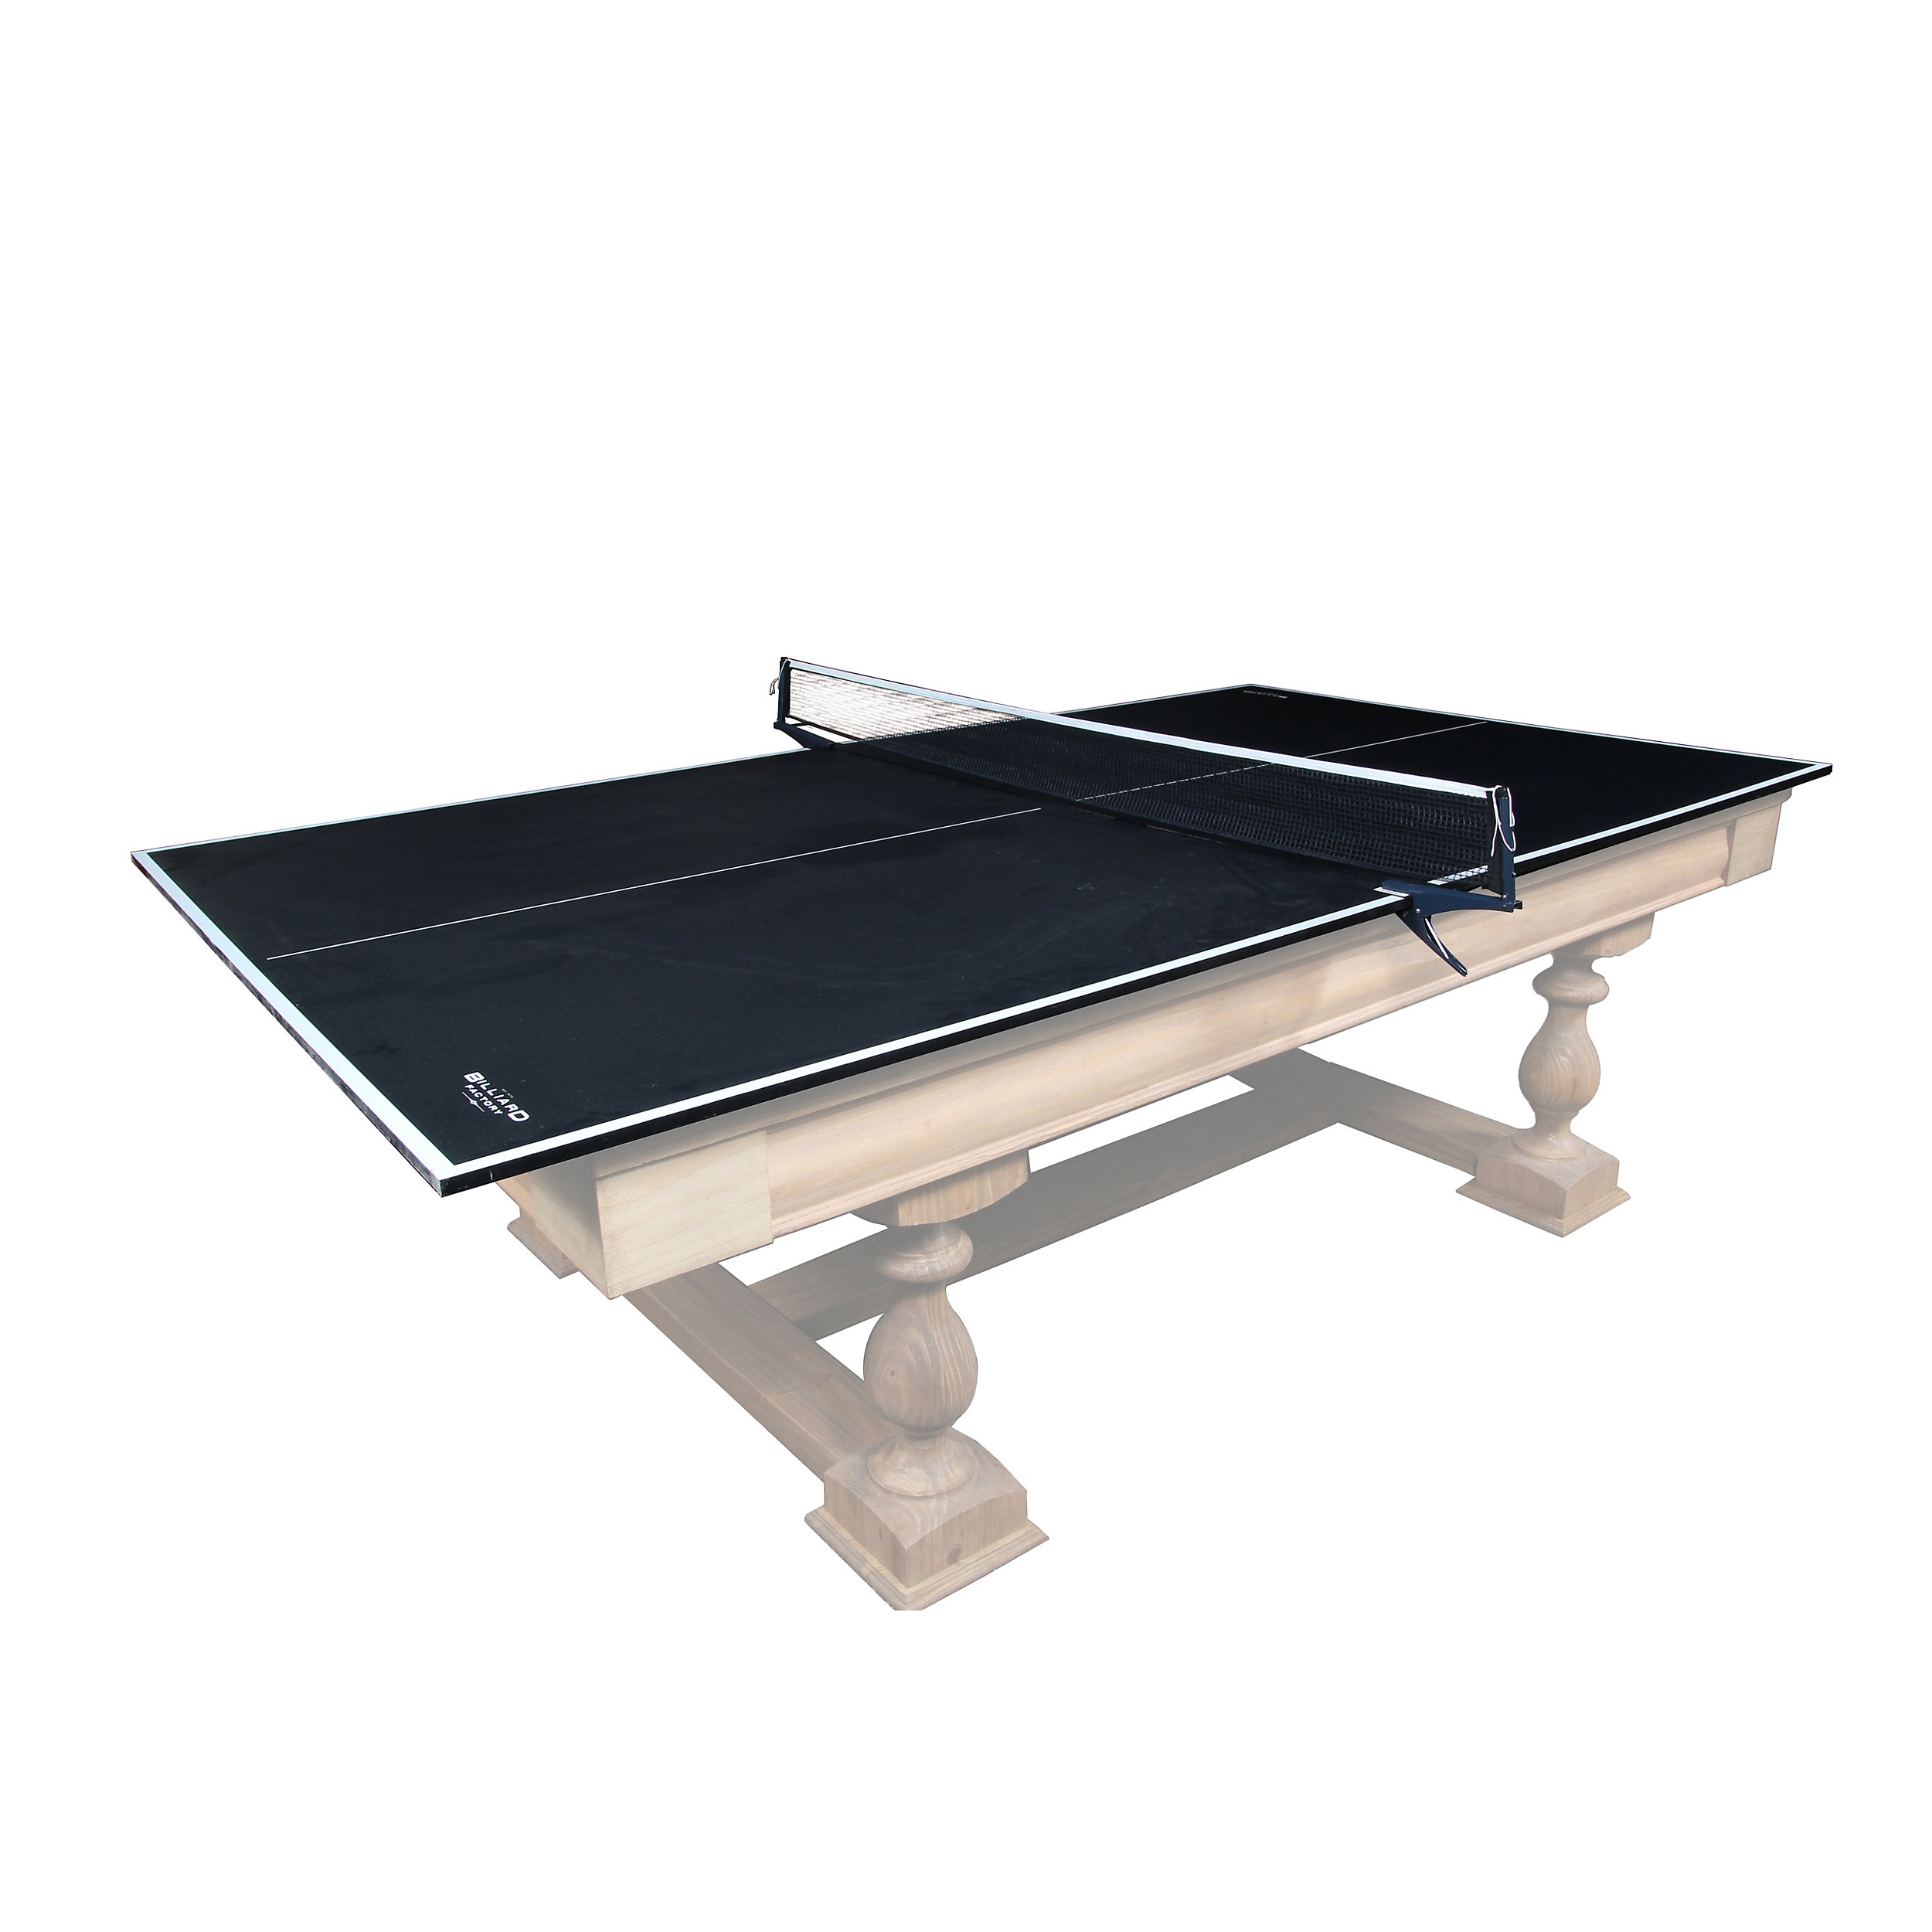 Spyder Table Tennis Conversion Top